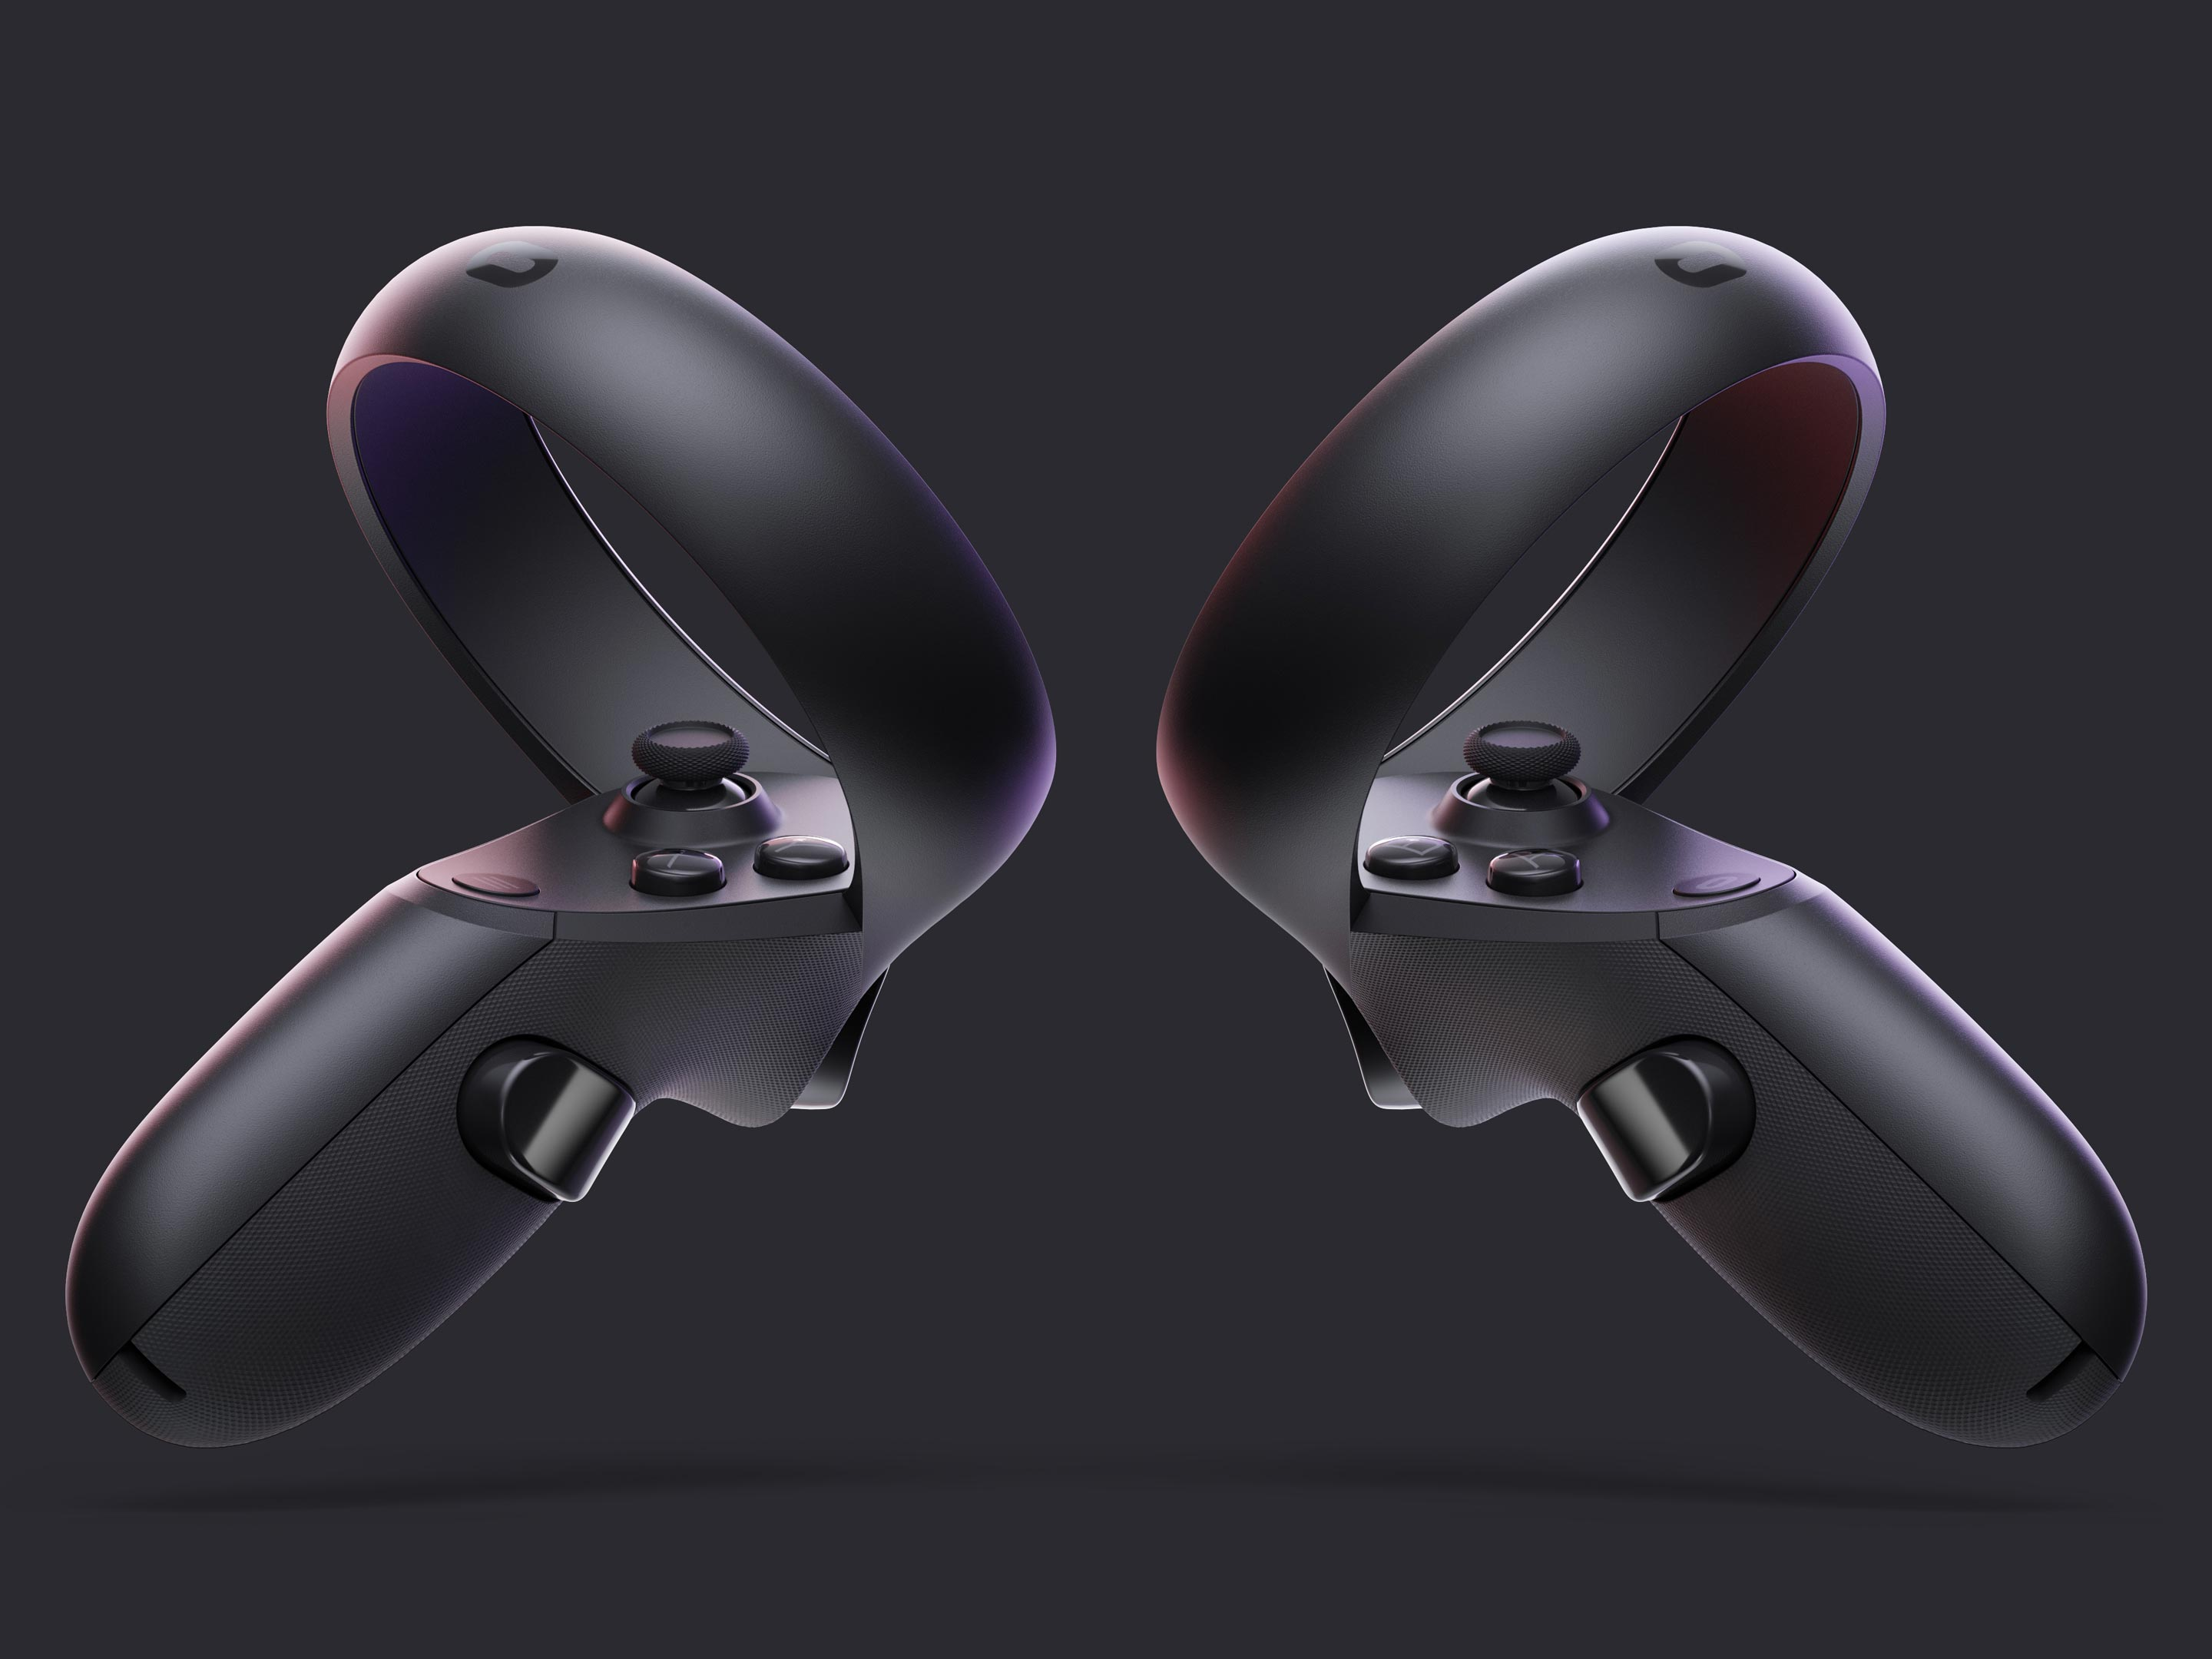 Oculus Quest Touch controllers